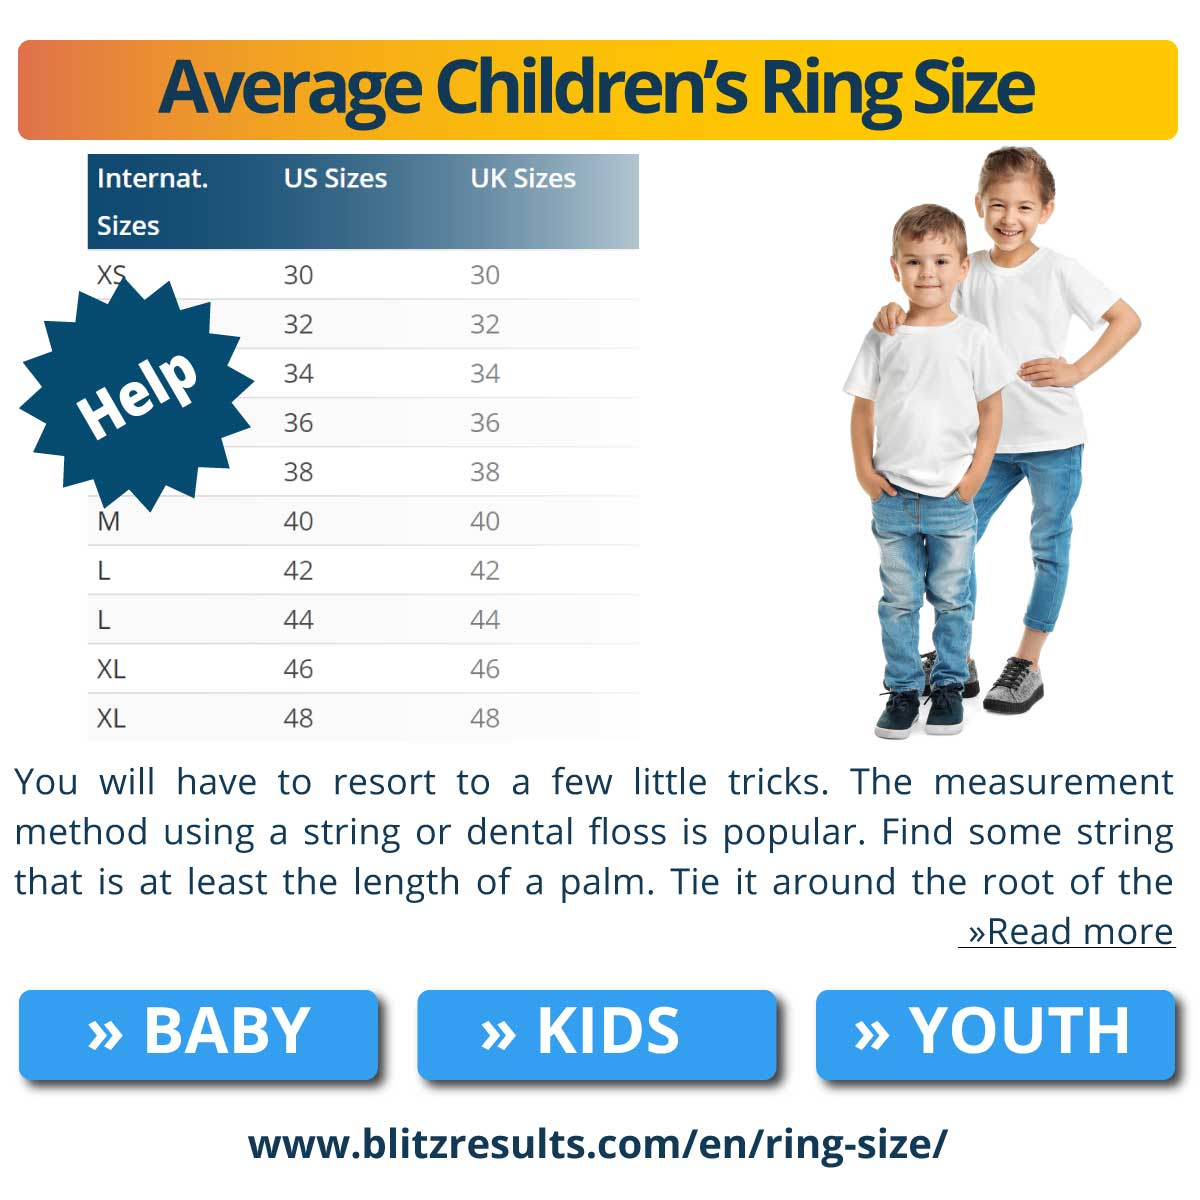 Average Children's Ring Size